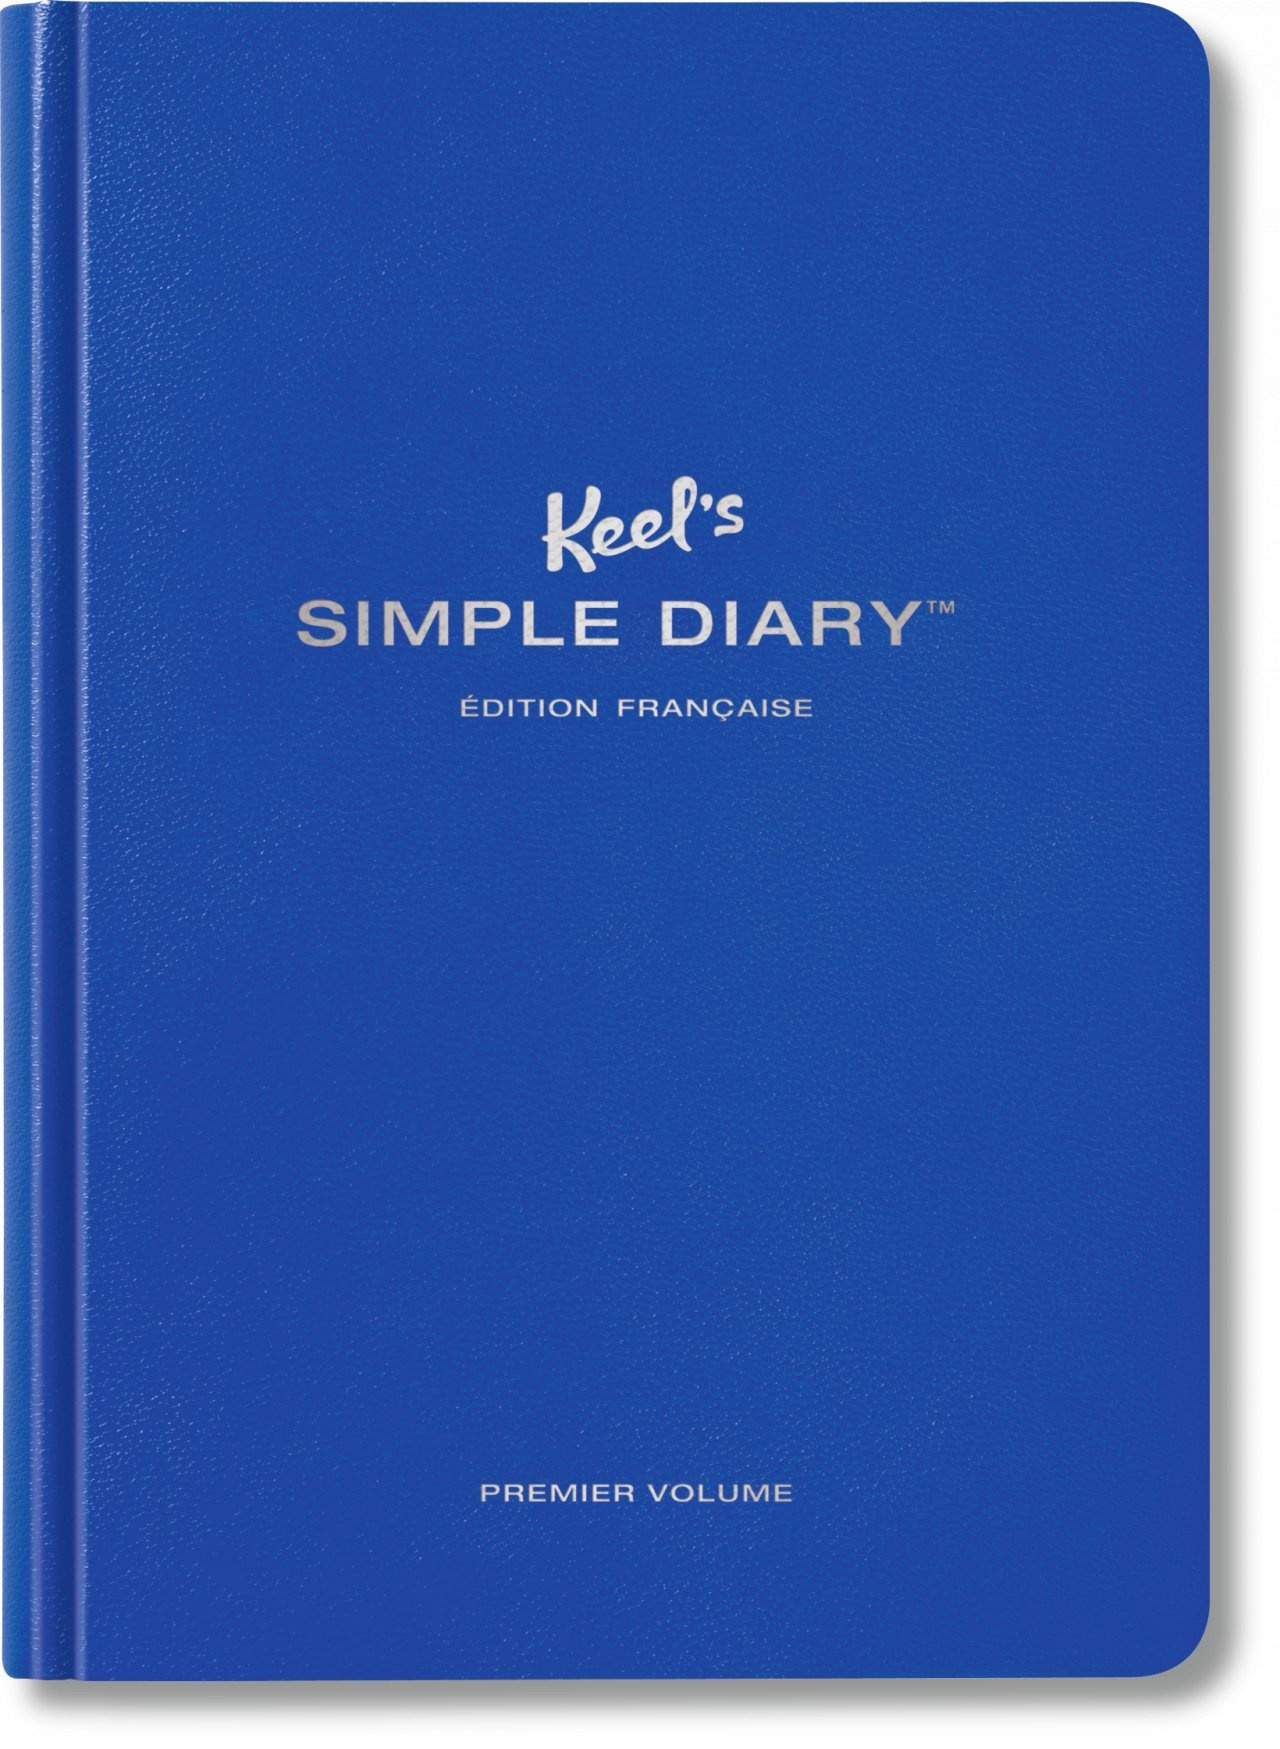 KEEL'S SIMPLE DIARY PREMIER VOLUME (BLEU ROI)